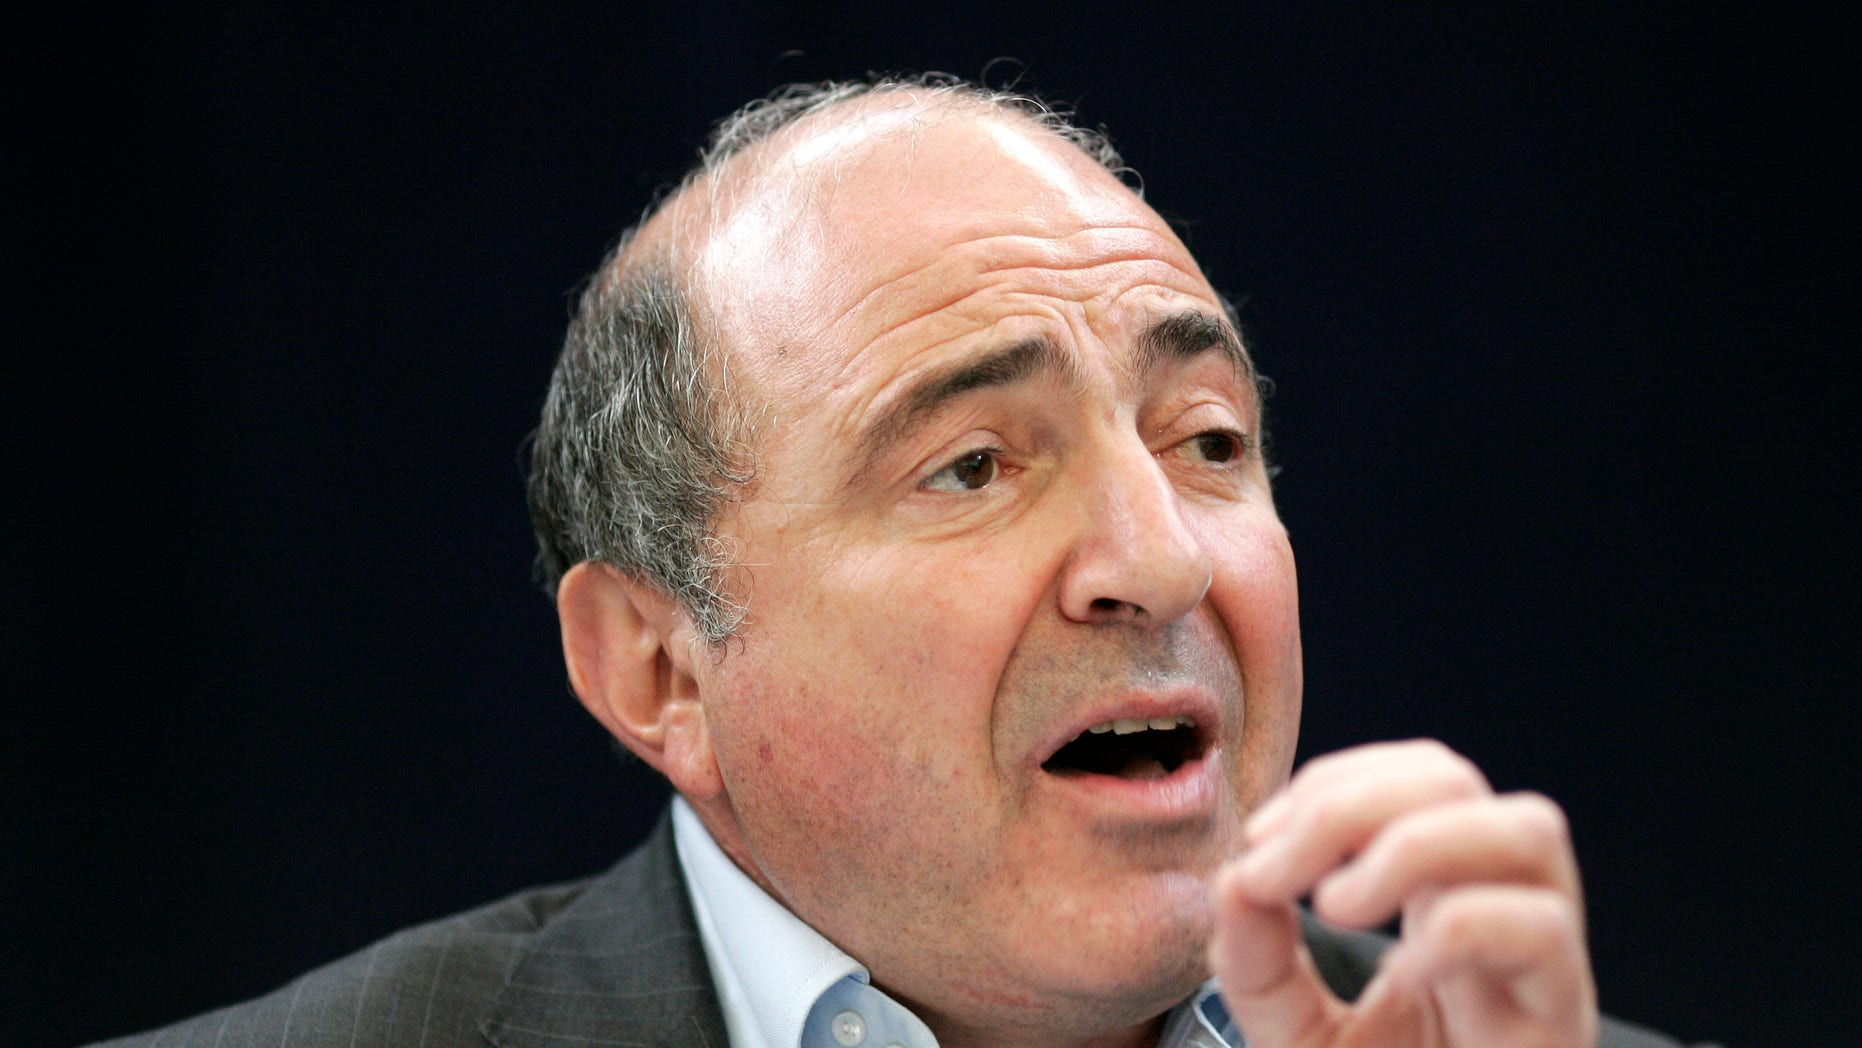 A  Wednesday, July 18, 2007 photo from files showing Russian exile Boris Berezovsky, a close friend of former Russian agent Alexander Litvinenko who was poisoned by Polonium 2-10, speaking to the media in a news conference in London.